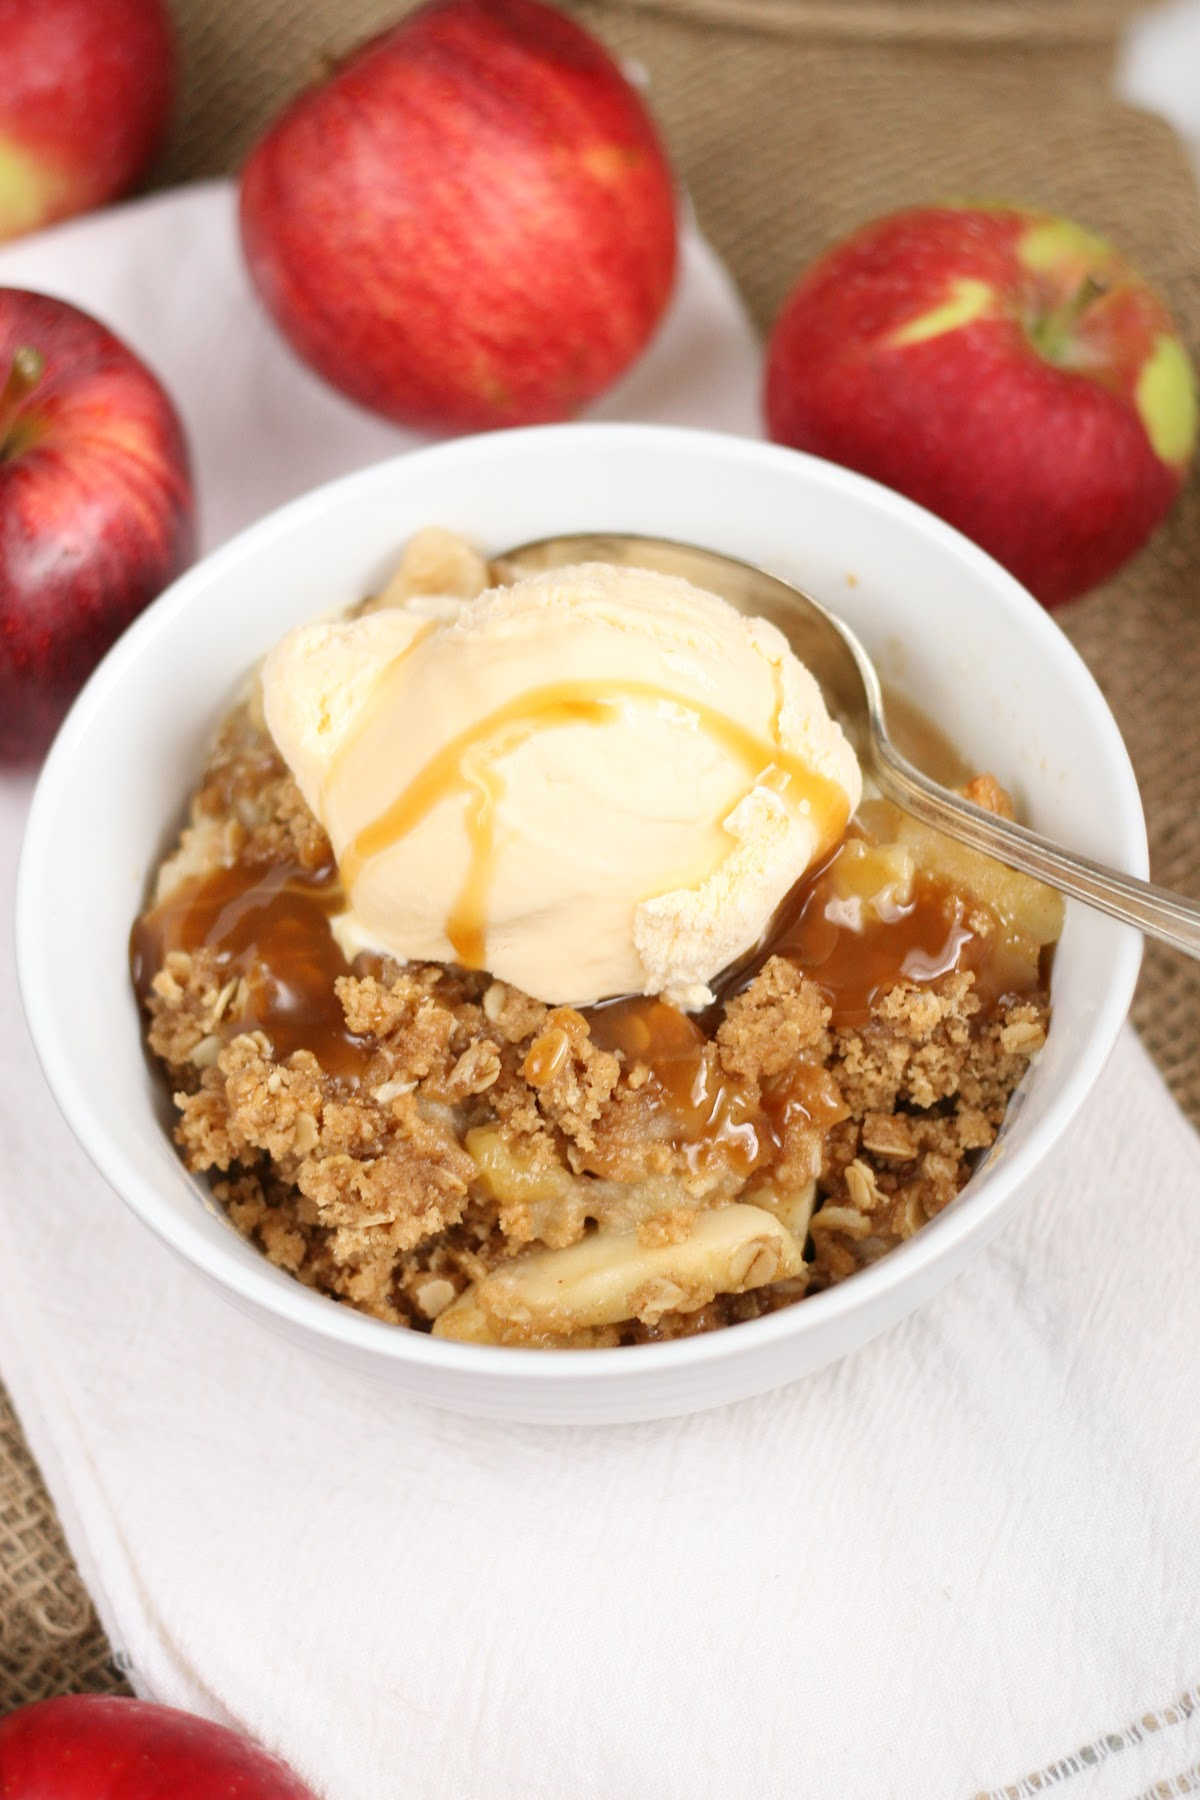 Apple crisp with caramel sauce in small white bowl with spoon.